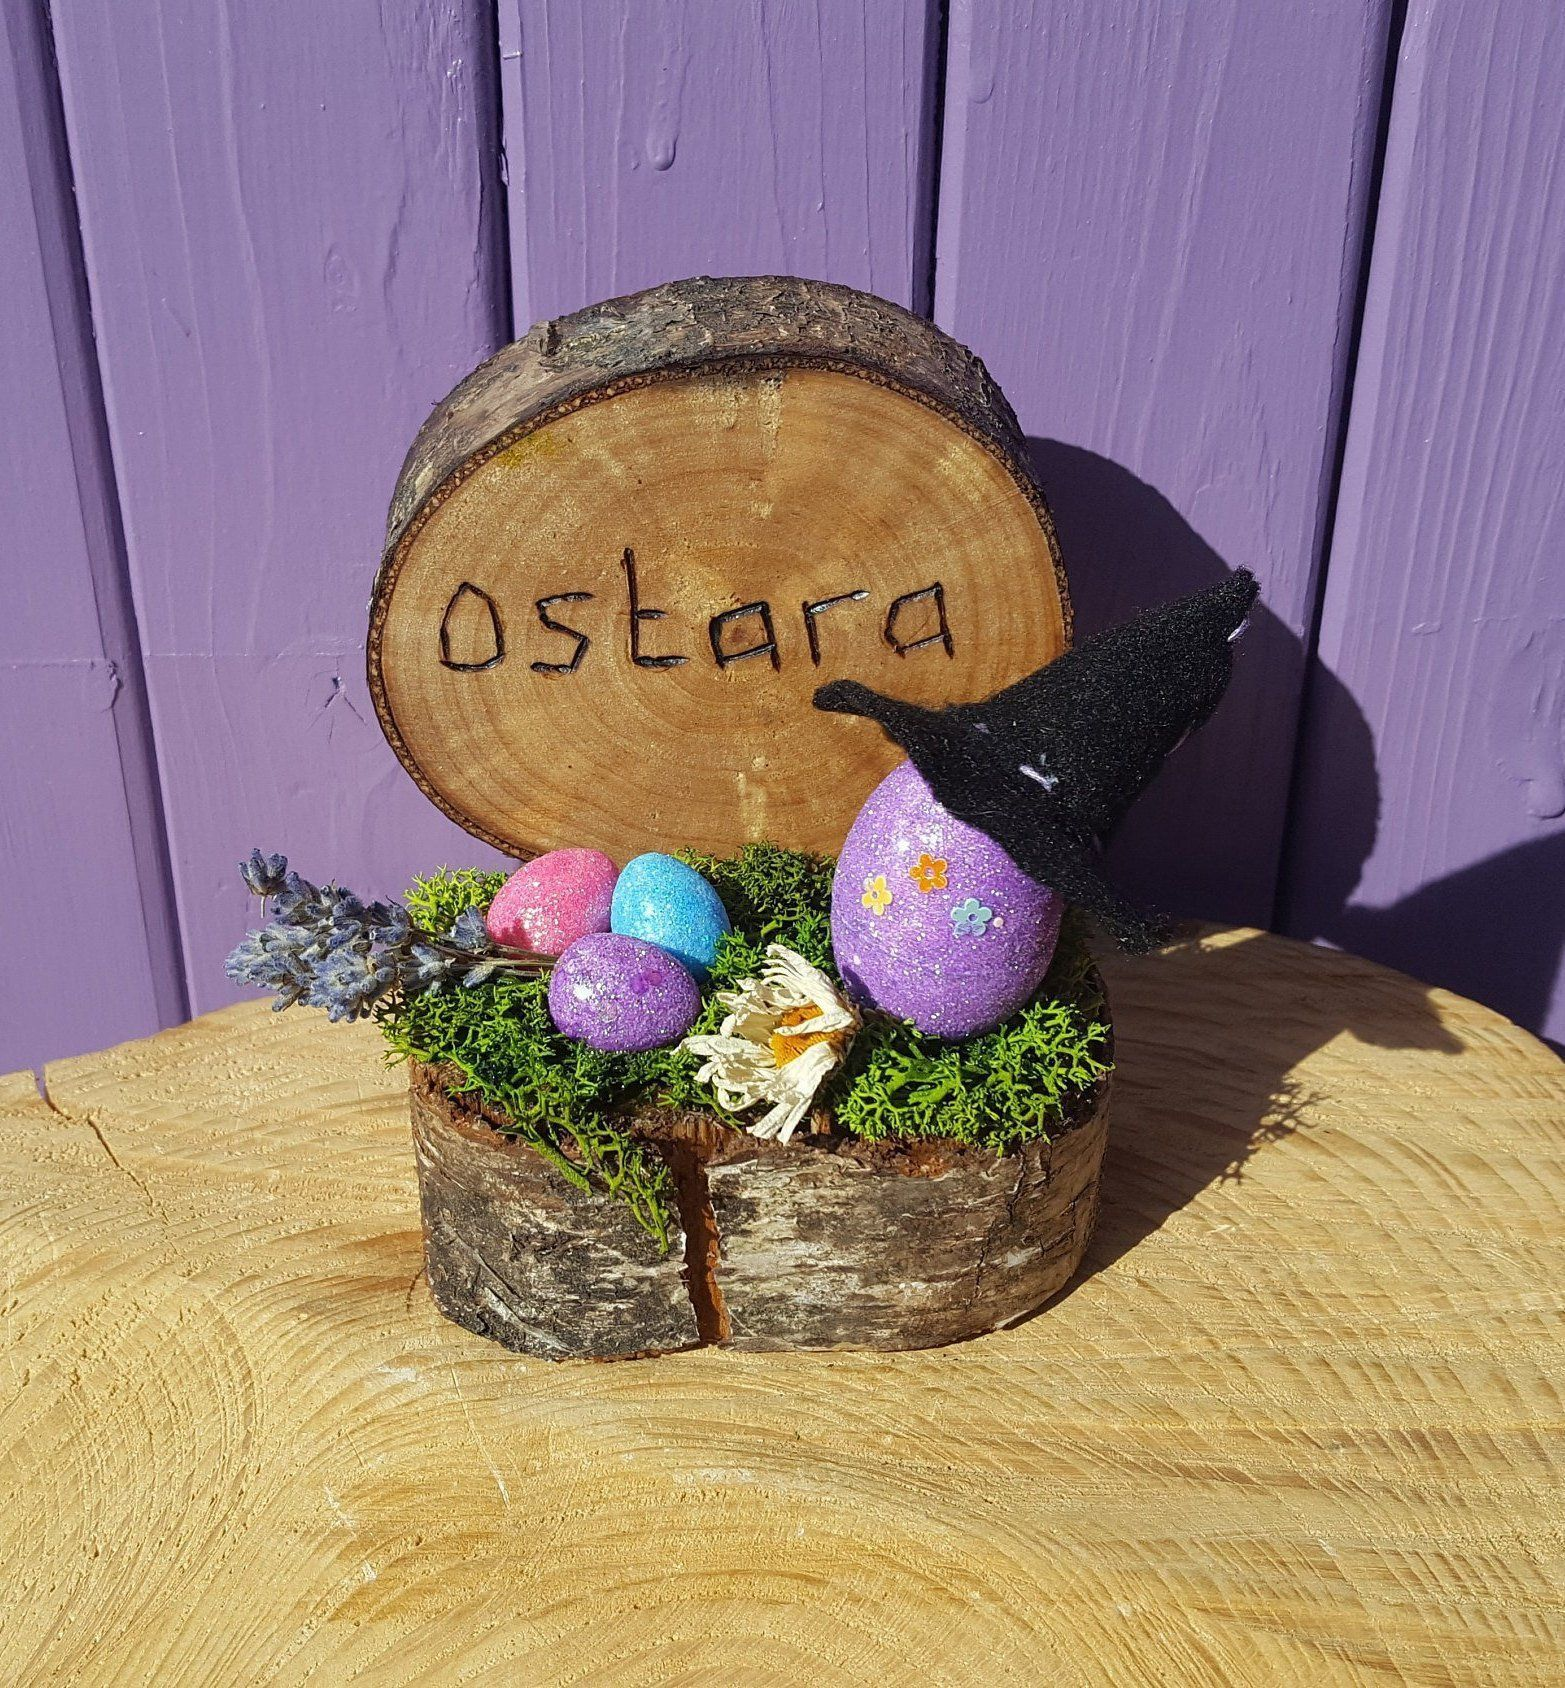 Ostara Witch Decor, Miniature Witchy Hat, Dried Lavender, Spring Daisy Altar, Vernal Equinox, Purple Easter Eggs, Wiccan Decoration #wiccandecor Ostara Witch Decor, Miniature Witchy Hat, Dried Lavender, Spring Daisy Altar, Vernal Equinox, Purple Easter Eggs, Wiccan Decoration #wiccandecor Ostara Witch Decor, Miniature Witchy Hat, Dried Lavender, Spring Daisy Altar, Vernal Equinox, Purple Easter Eggs, Wiccan Decoration #wiccandecor Ostara Witch Decor, Miniature Witchy Hat, Dried Lavender, Spring #wiccandecor